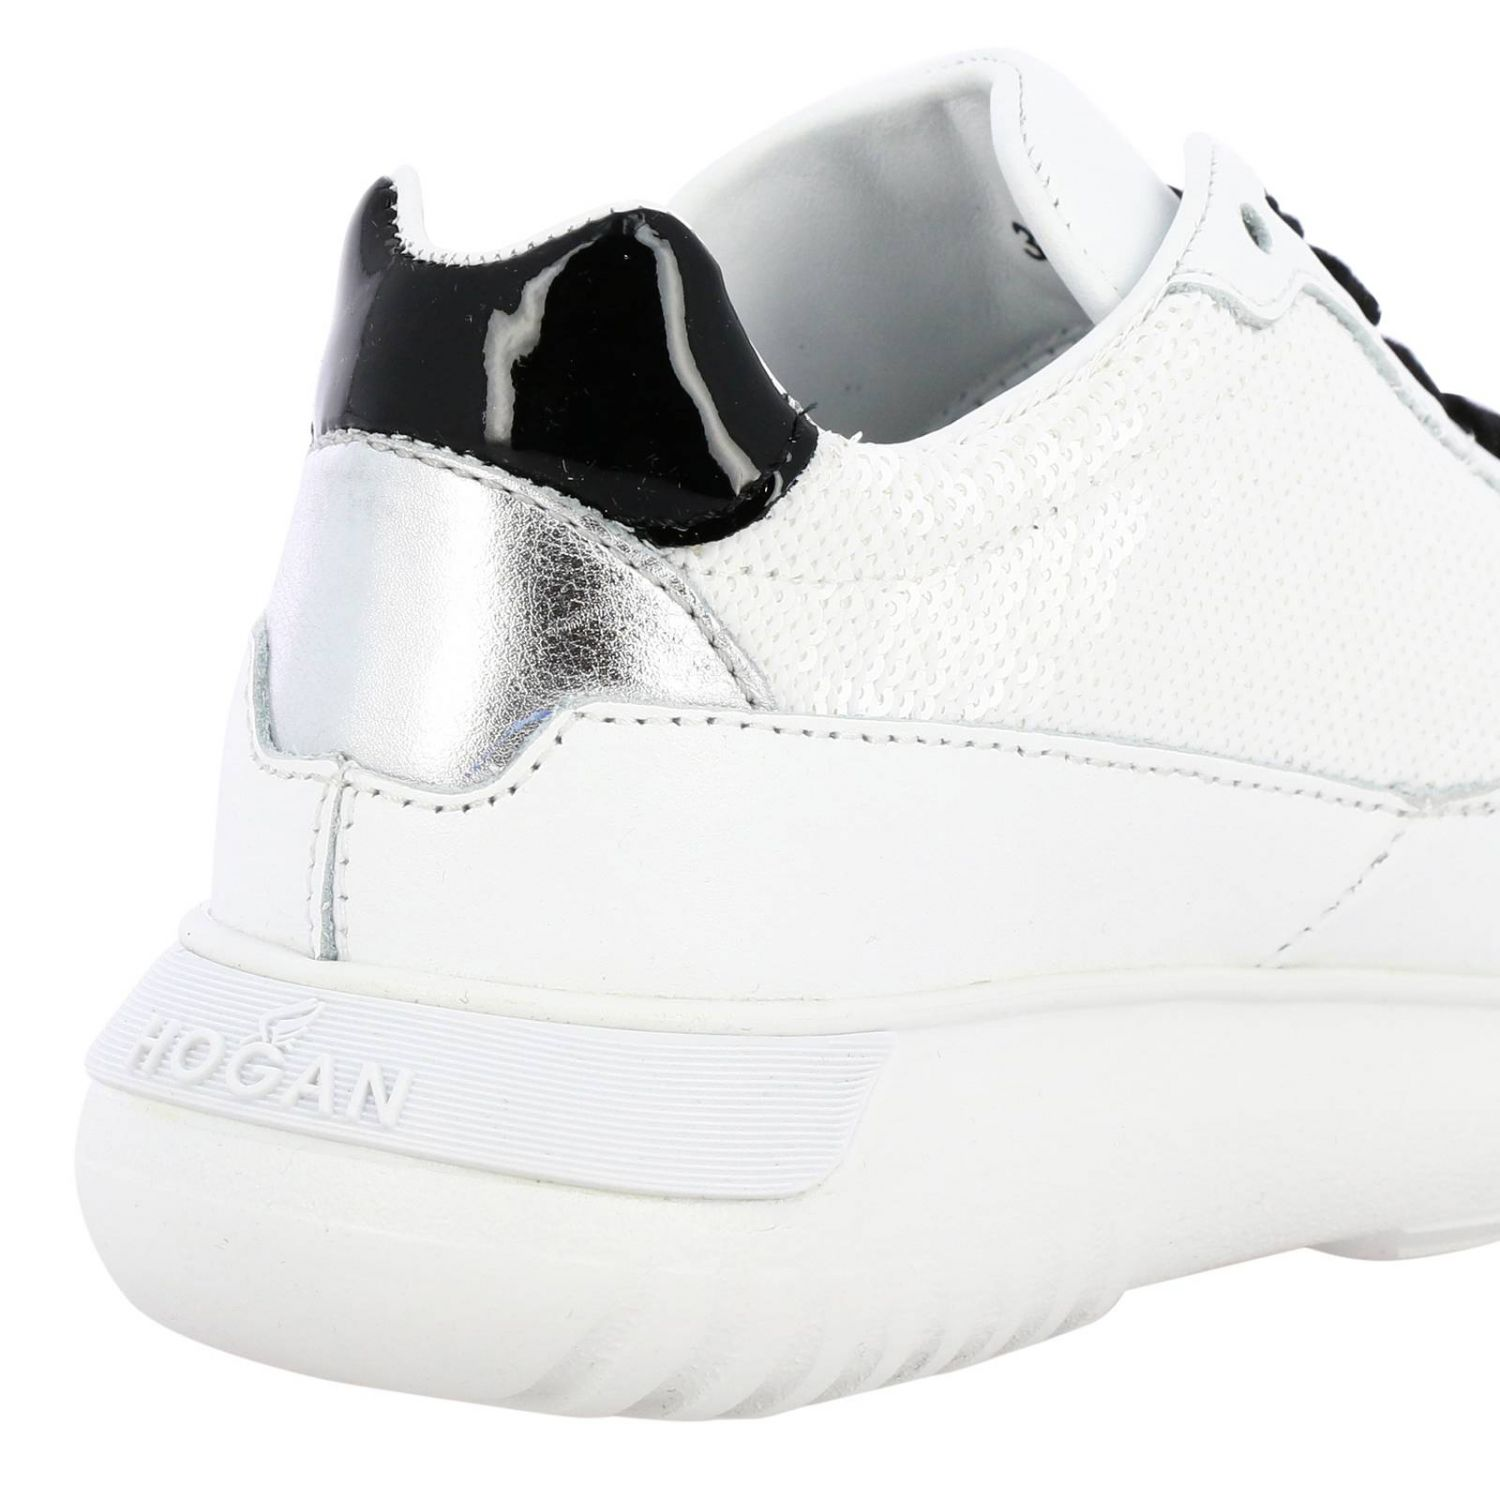 Cube Hogan sneakers in leather and sequins white 4